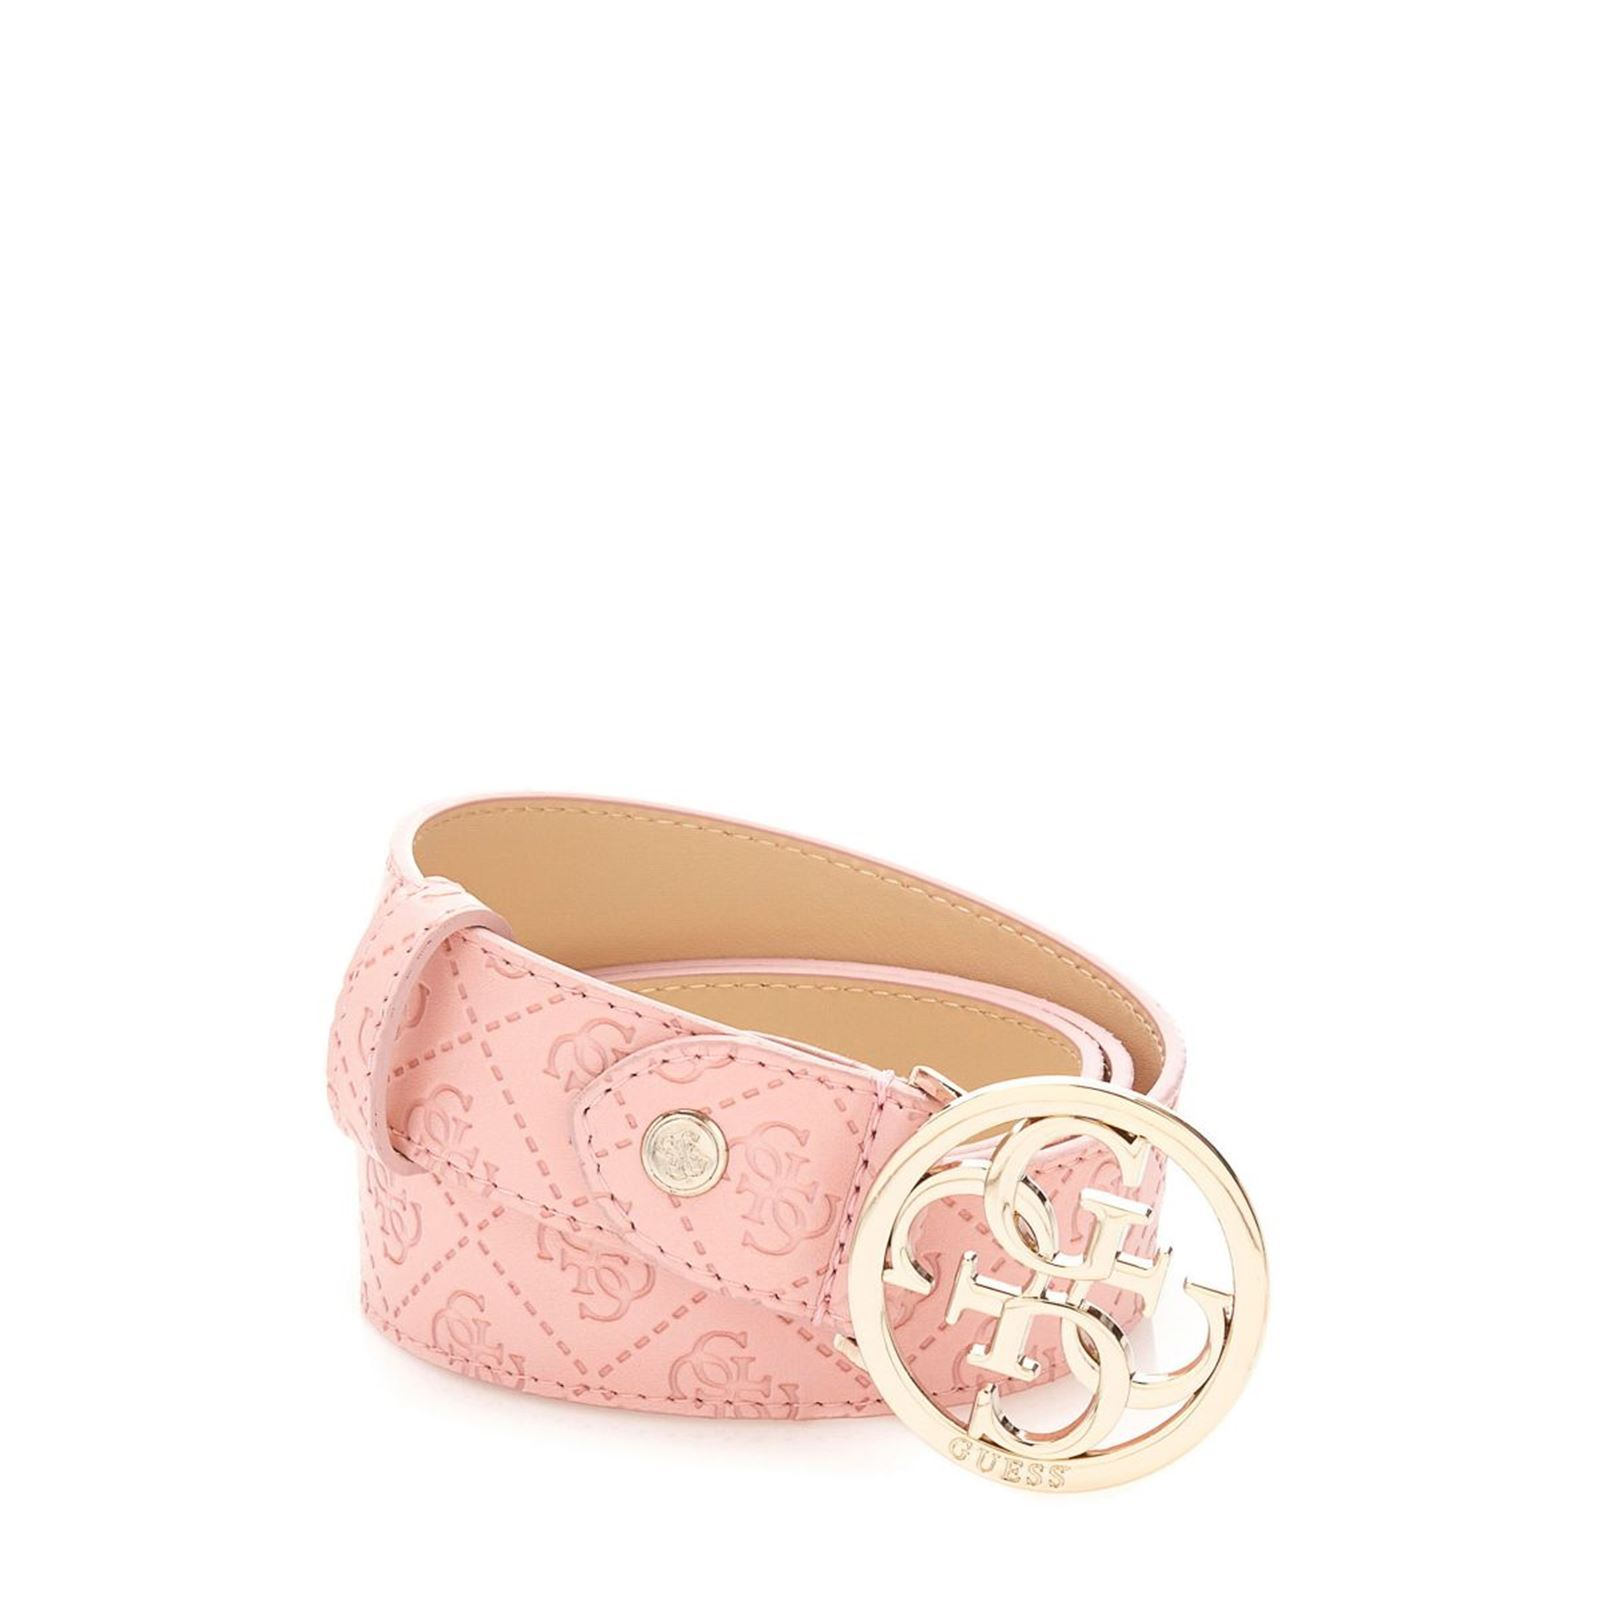 Guess Rayna - Ceinture - rose clair   BrandAlley dc6a4b80293